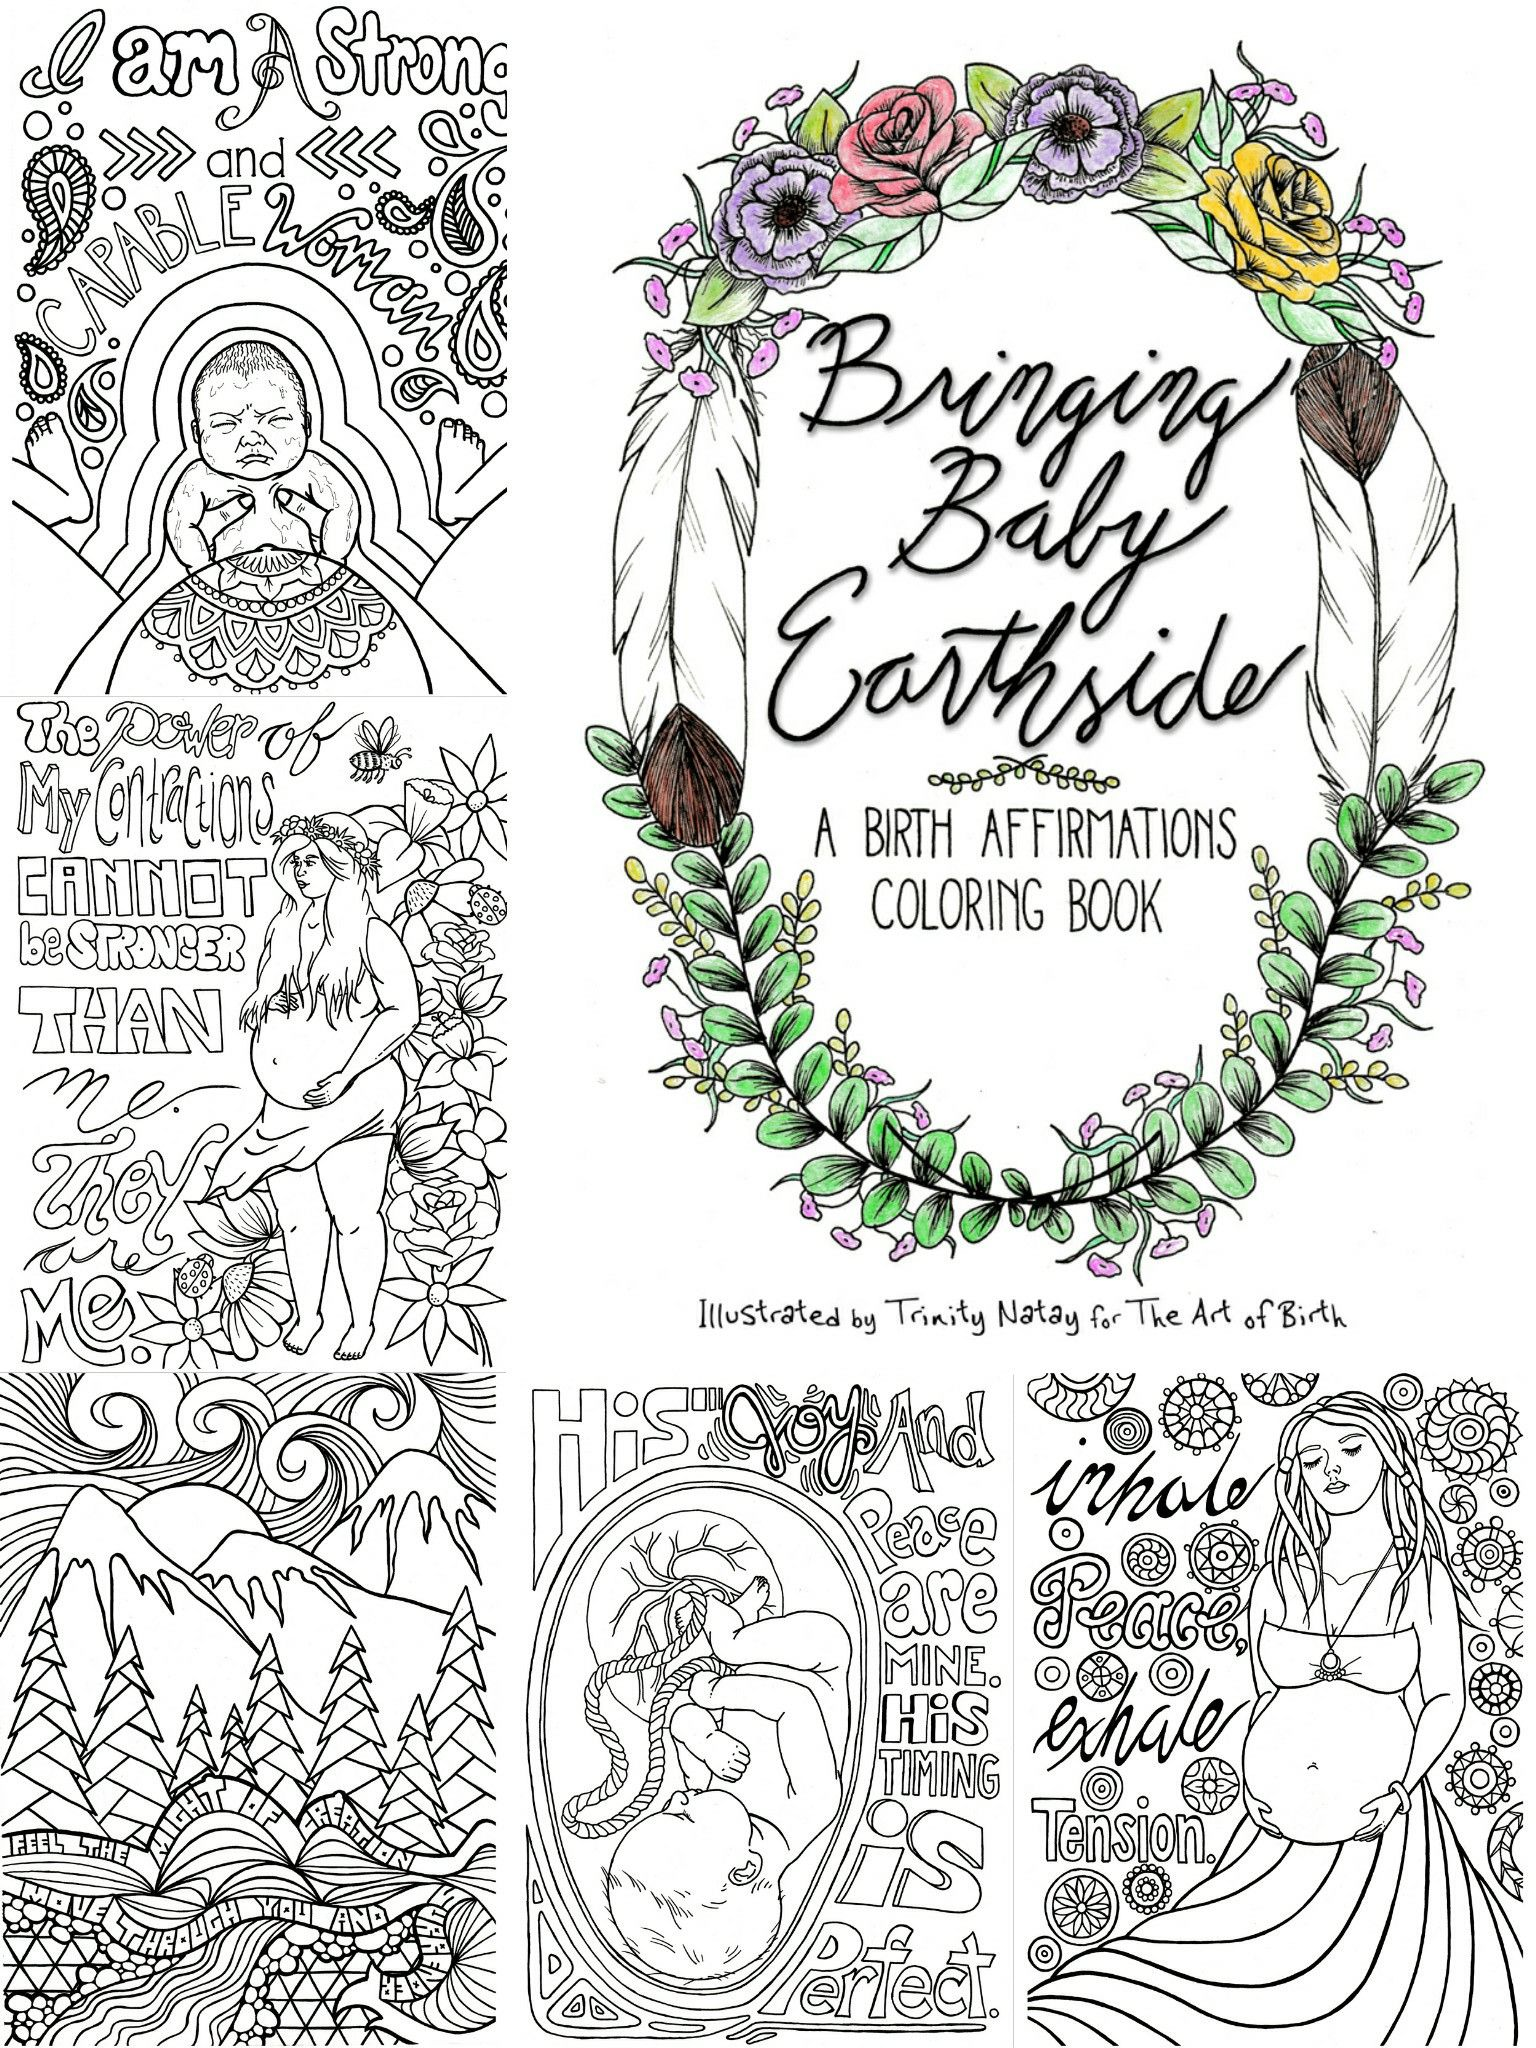 Bringing Baby Earthside A Birth Affirmations Coloring